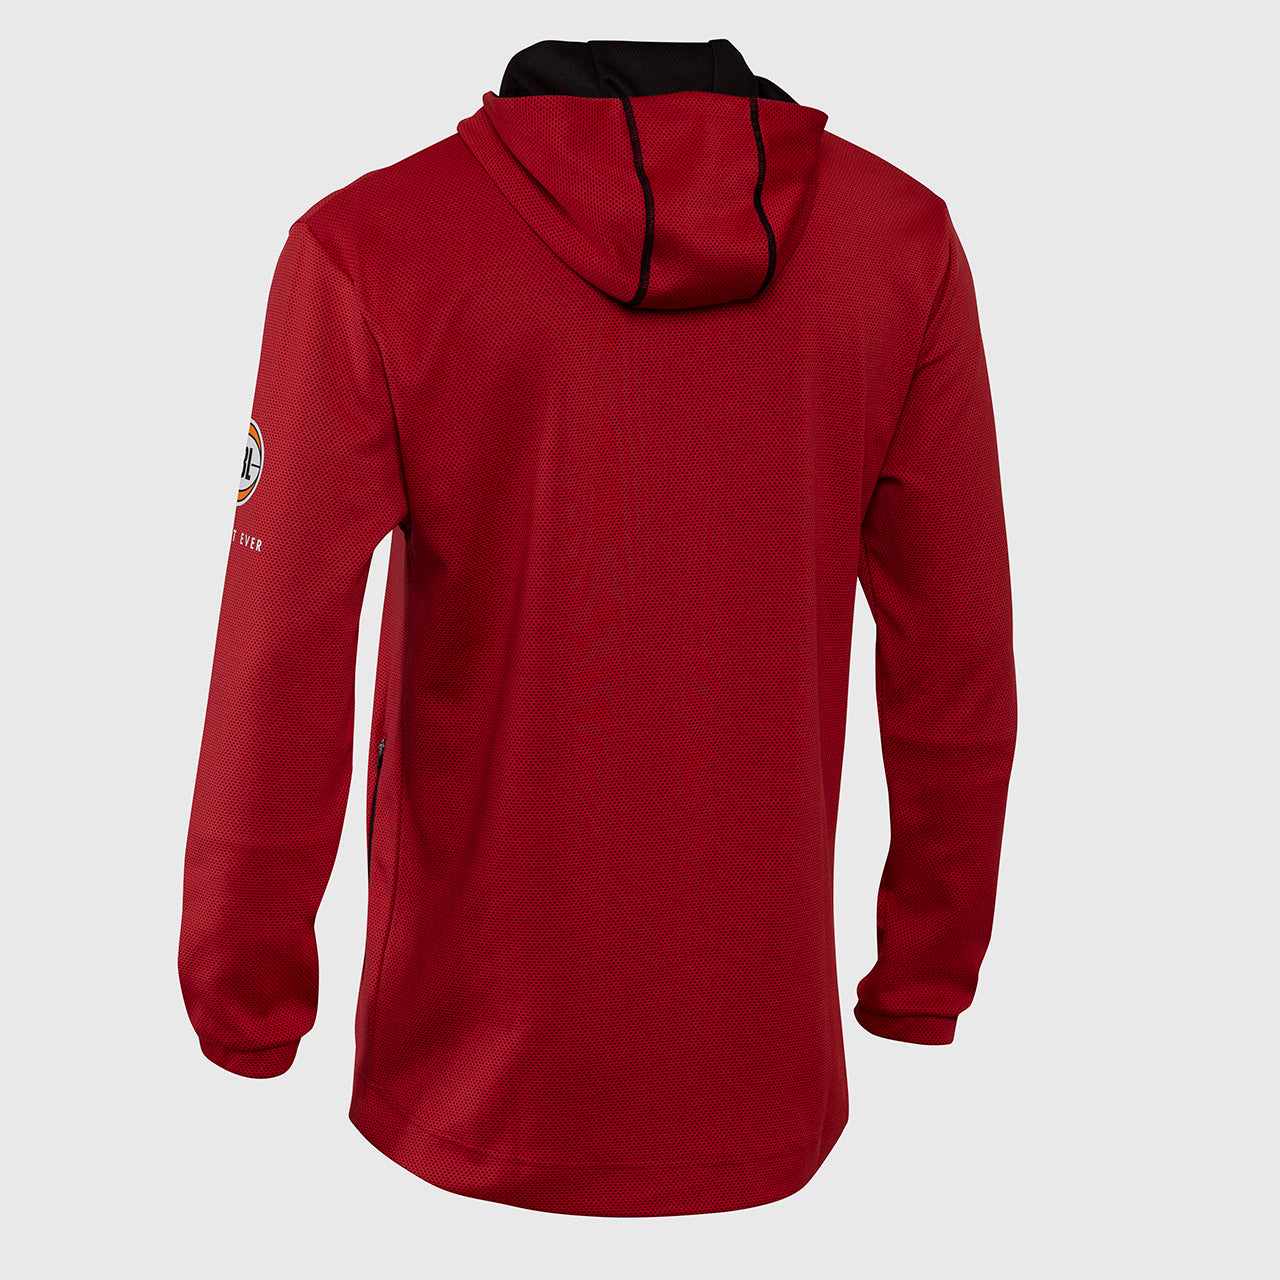 Perth Wildcats 18/19 Training Performance Hoodie